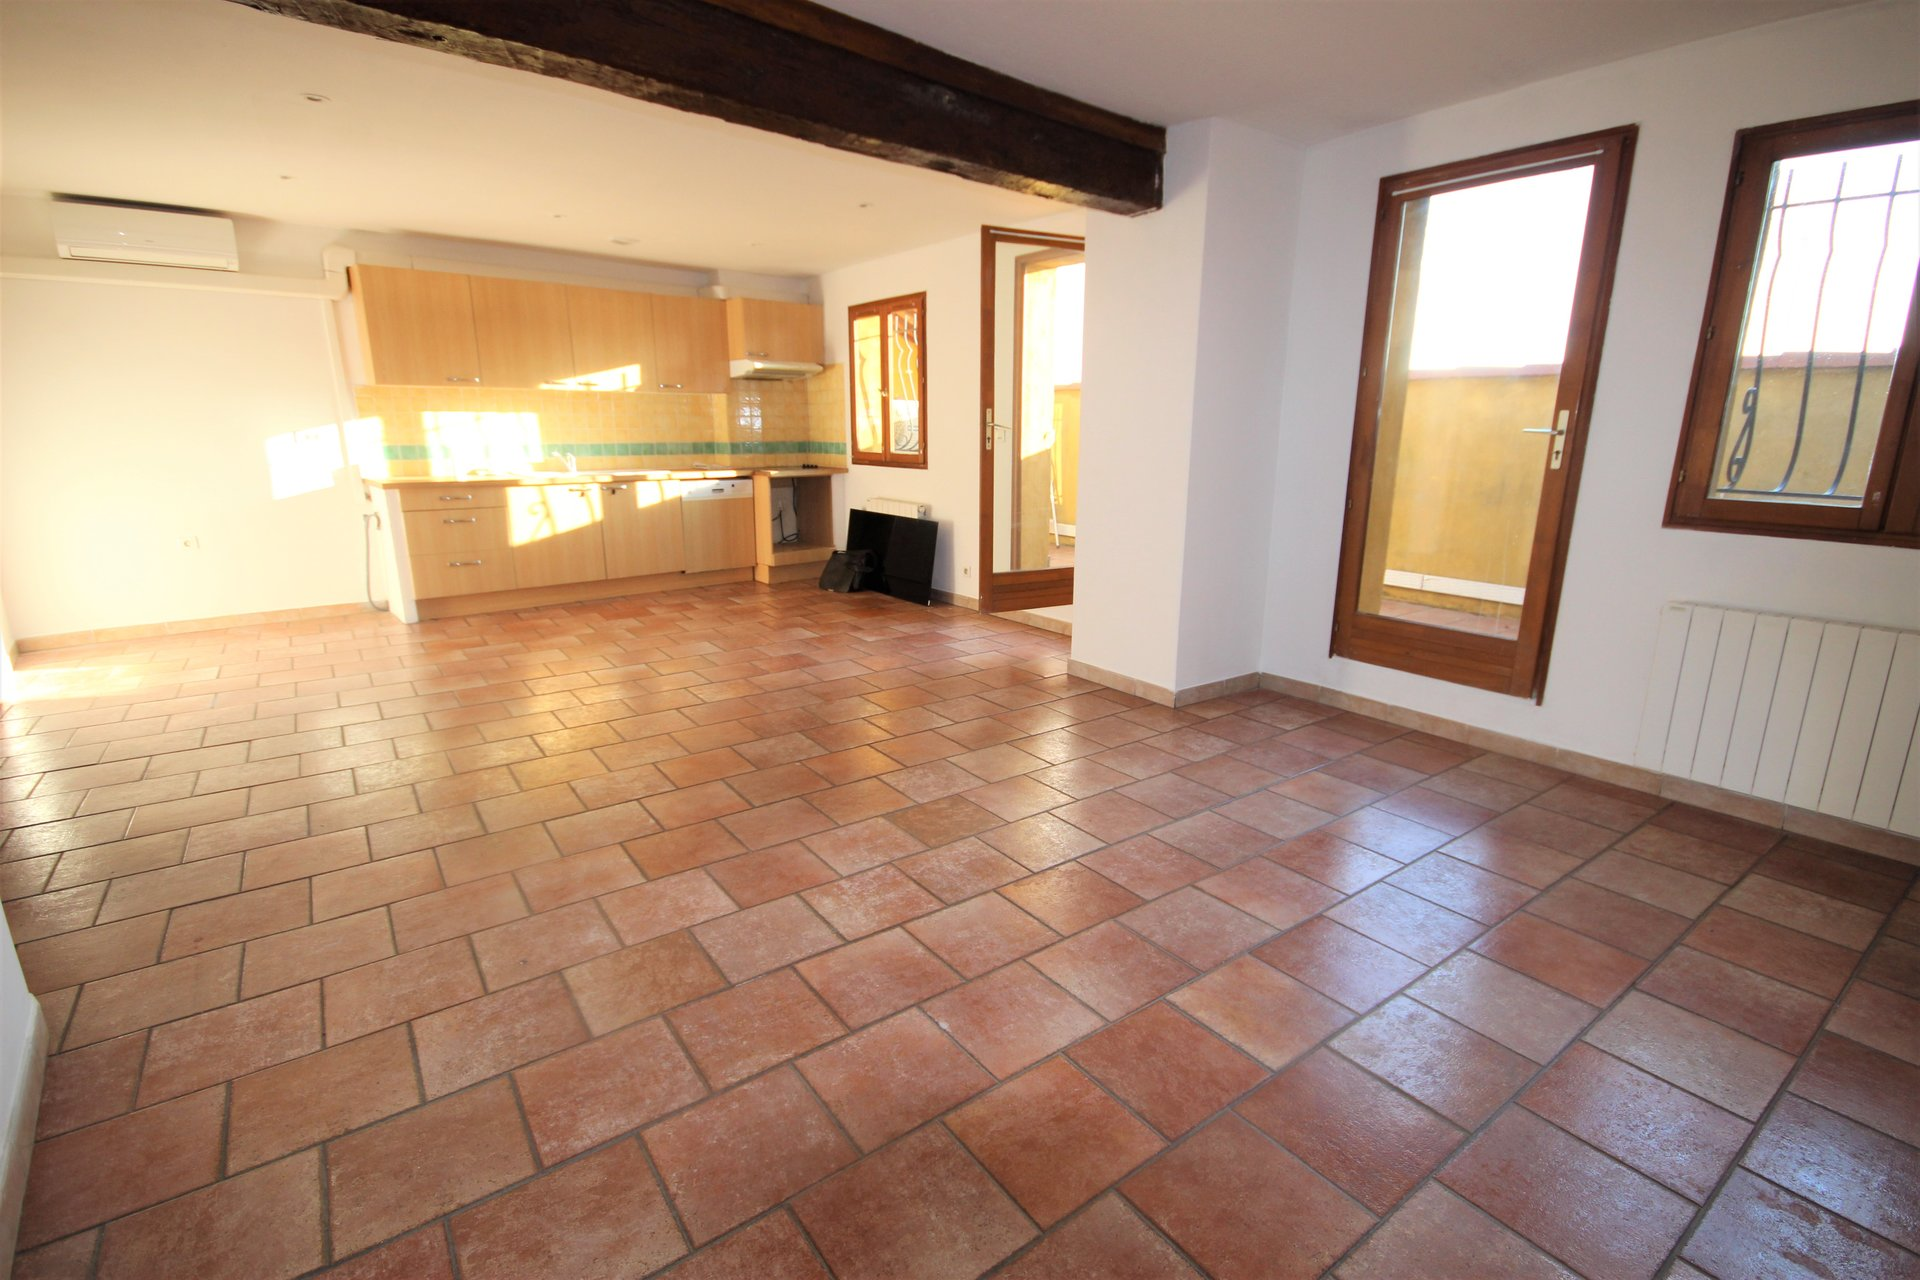 MANDELIEU SALE 3 ROOMS ON THE LAST FLOOR OF A HOUSE WITH GARAGE